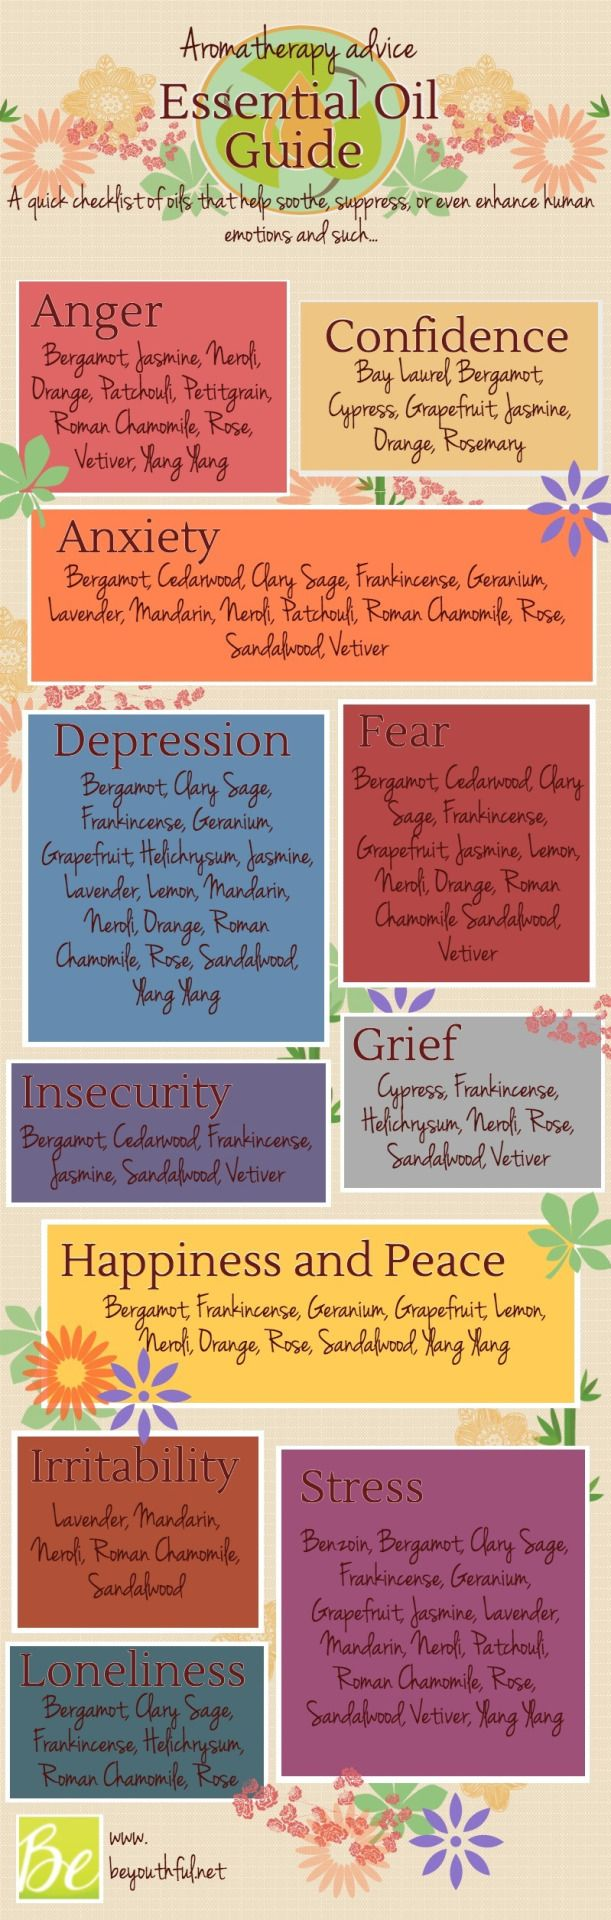 """beyouthful-beyou: """" Aromatherapy Advice, an essential oil guide… http://beyouthful.net/infographic-aromatherapy-advice-essential-oil-guide/ """""""